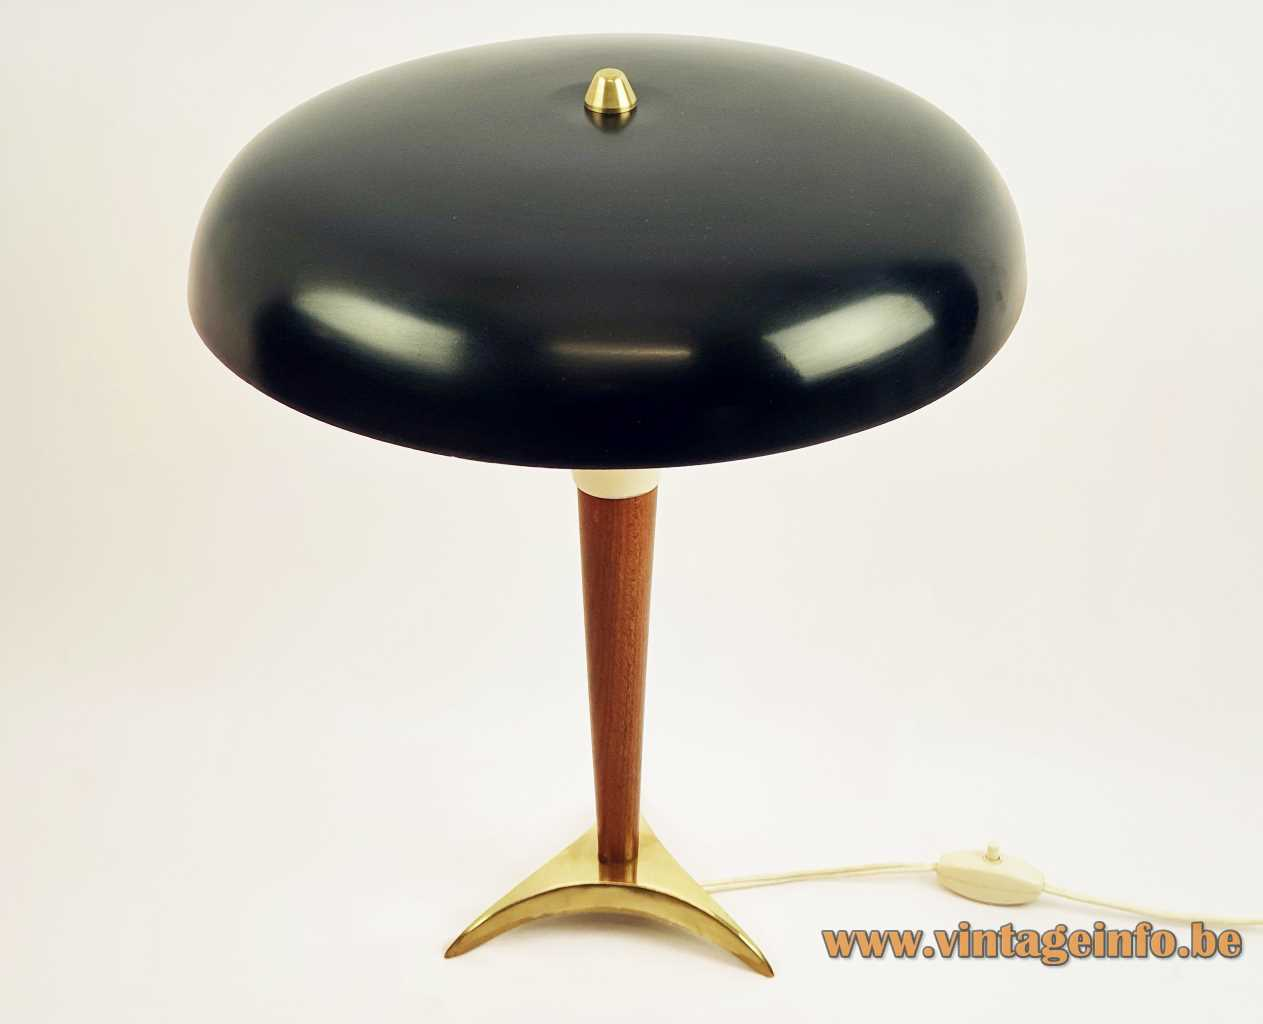 VEB Leuchtenbau tripod desk lamp 1950s design: Lutz Rudolf brass base conical wood rod mushroom lampshade